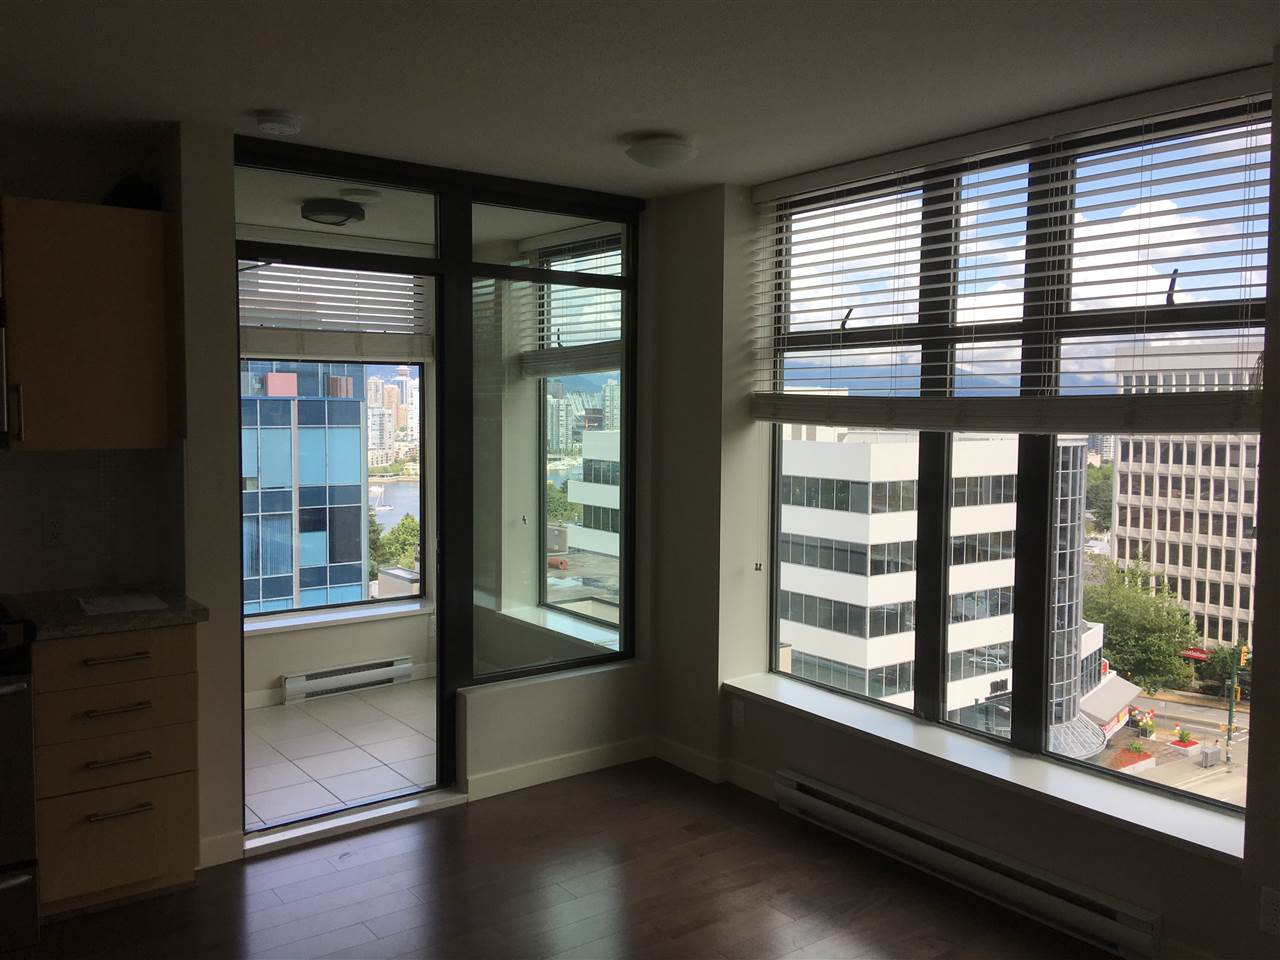 Condo Apartment at 1009 1068 W BROADWAY, Unit 1009, Vancouver West, British Columbia. Image 2